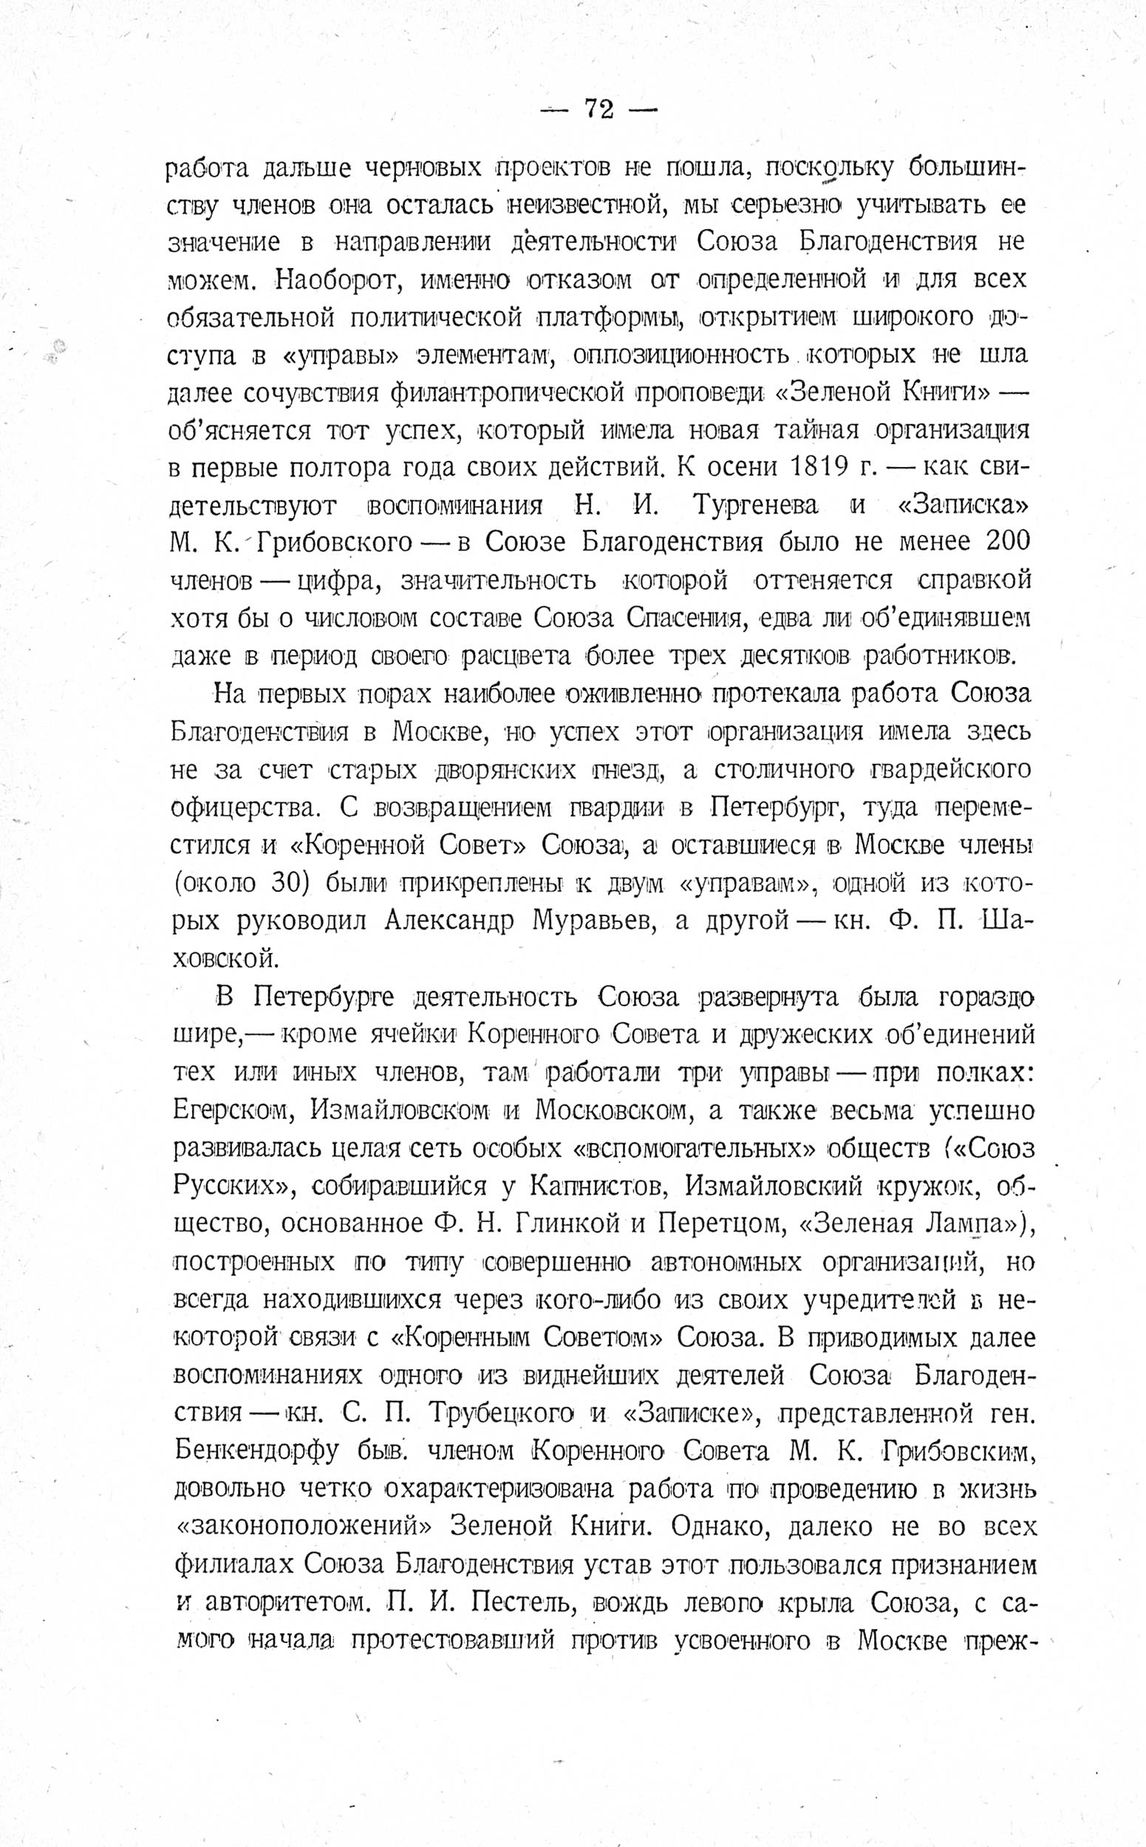 http://elib.shpl.ru/pages/625655/zooms/7